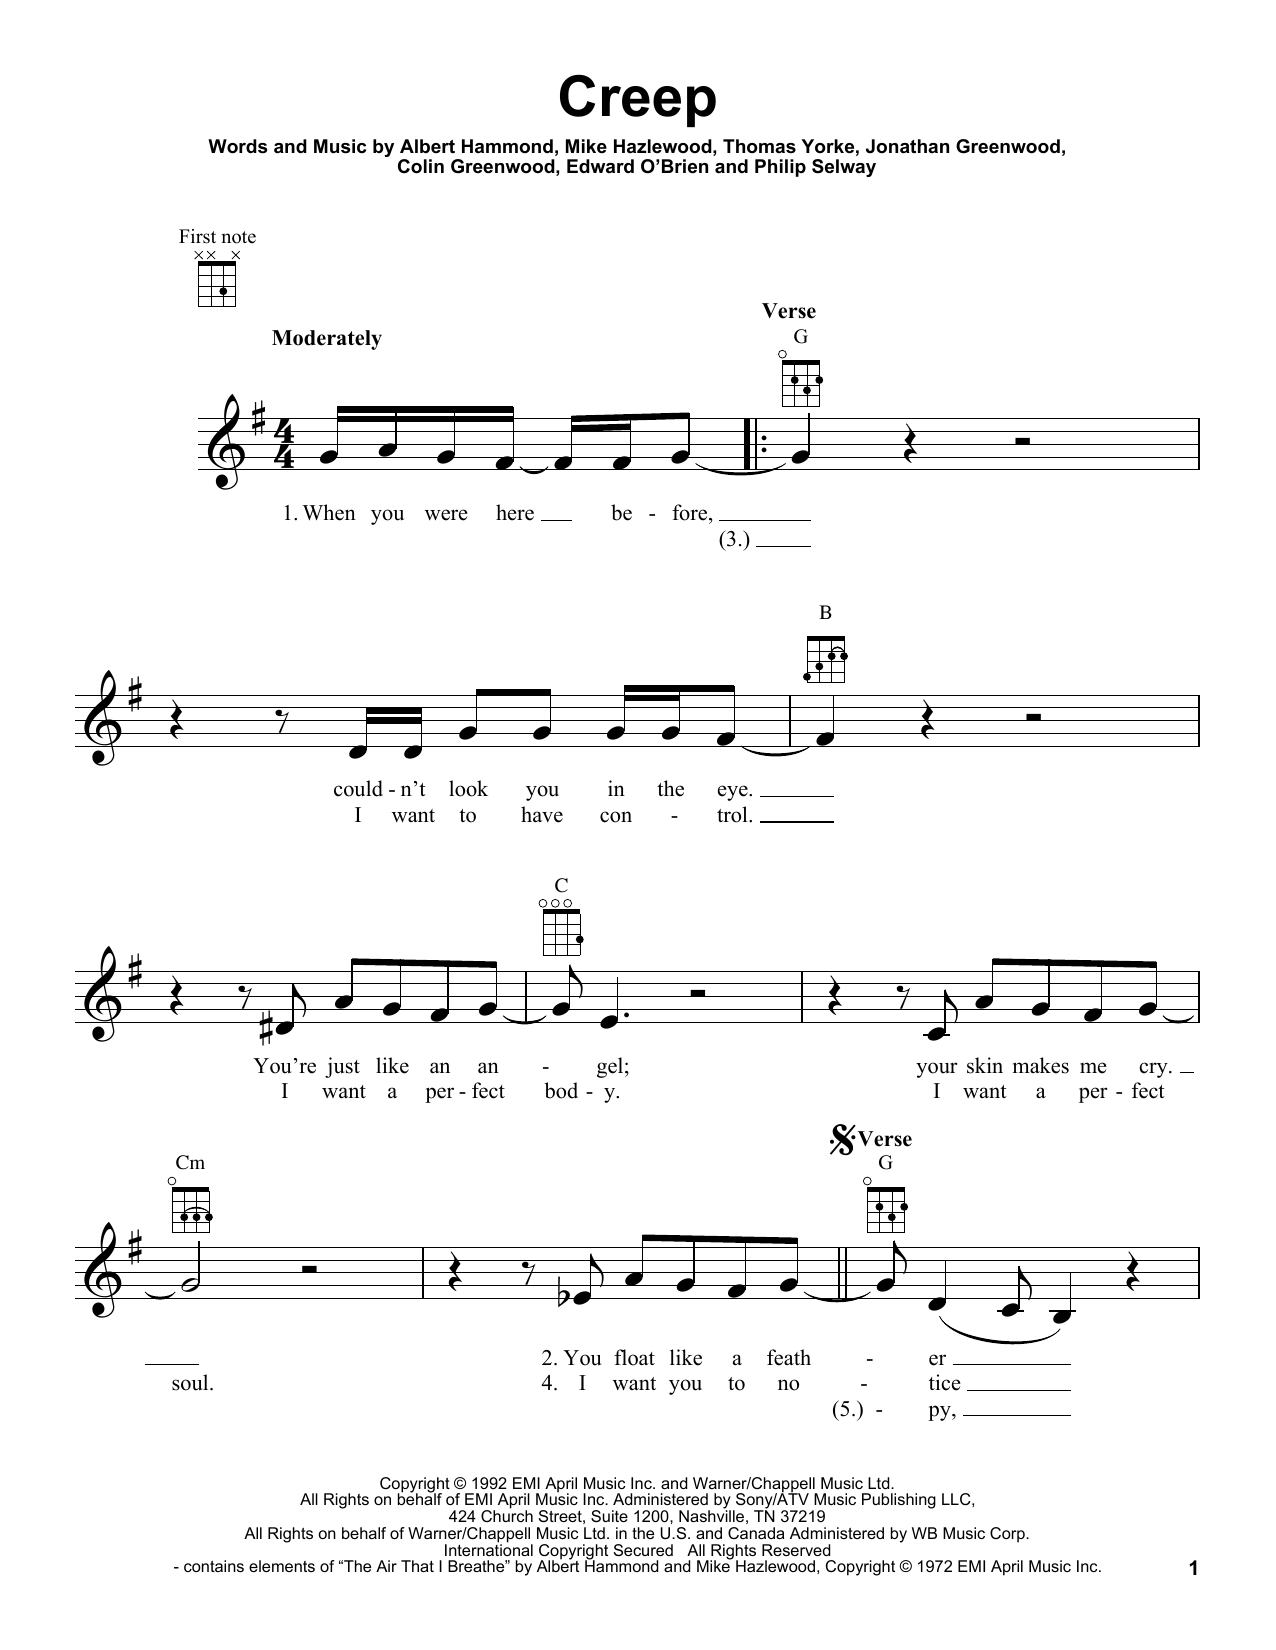 Creep Guitar Chords Gallery Piano Chord Chart With Finger Positions